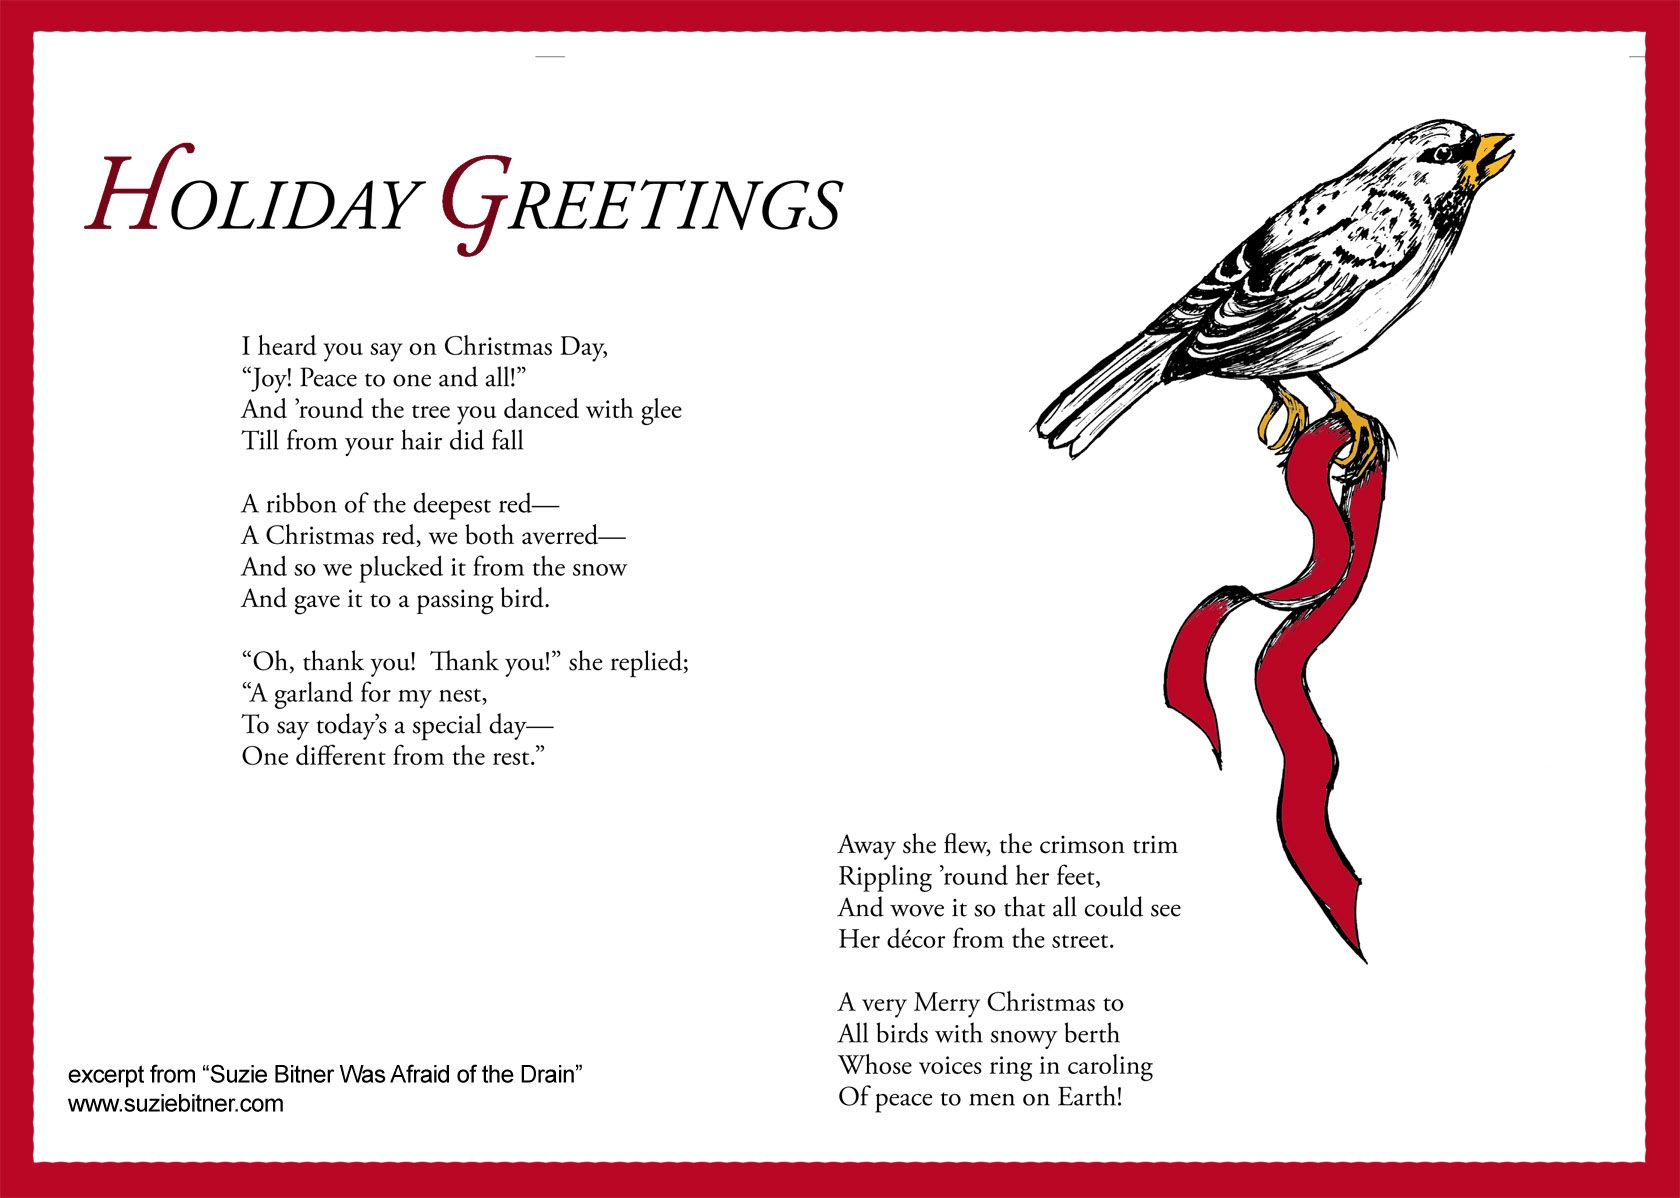 Holiday Greetings Poem Childrens Poem For Winter Great For School